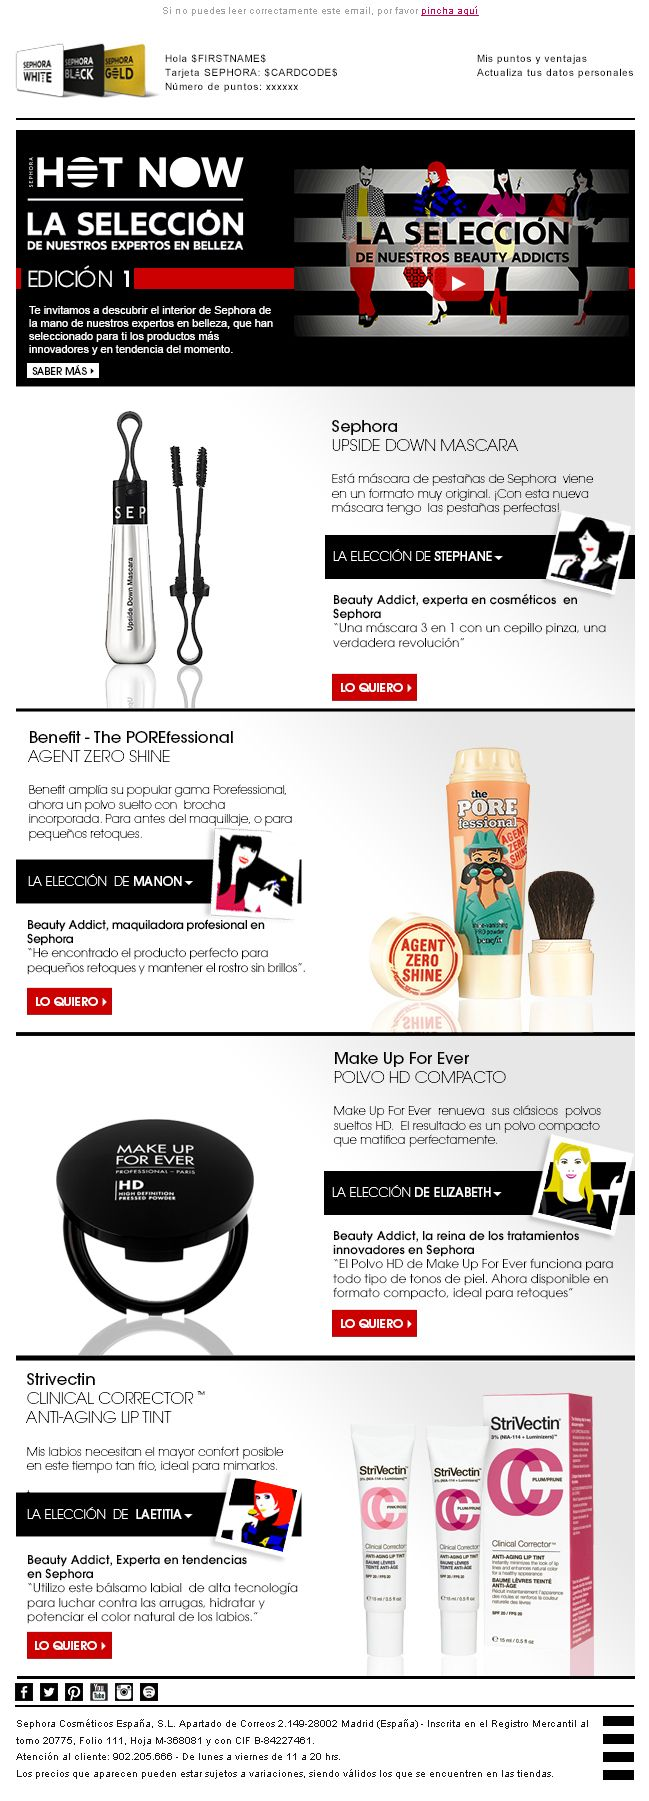 Newsletter - HOT NOW en Sephora. Acción de marketing on-line